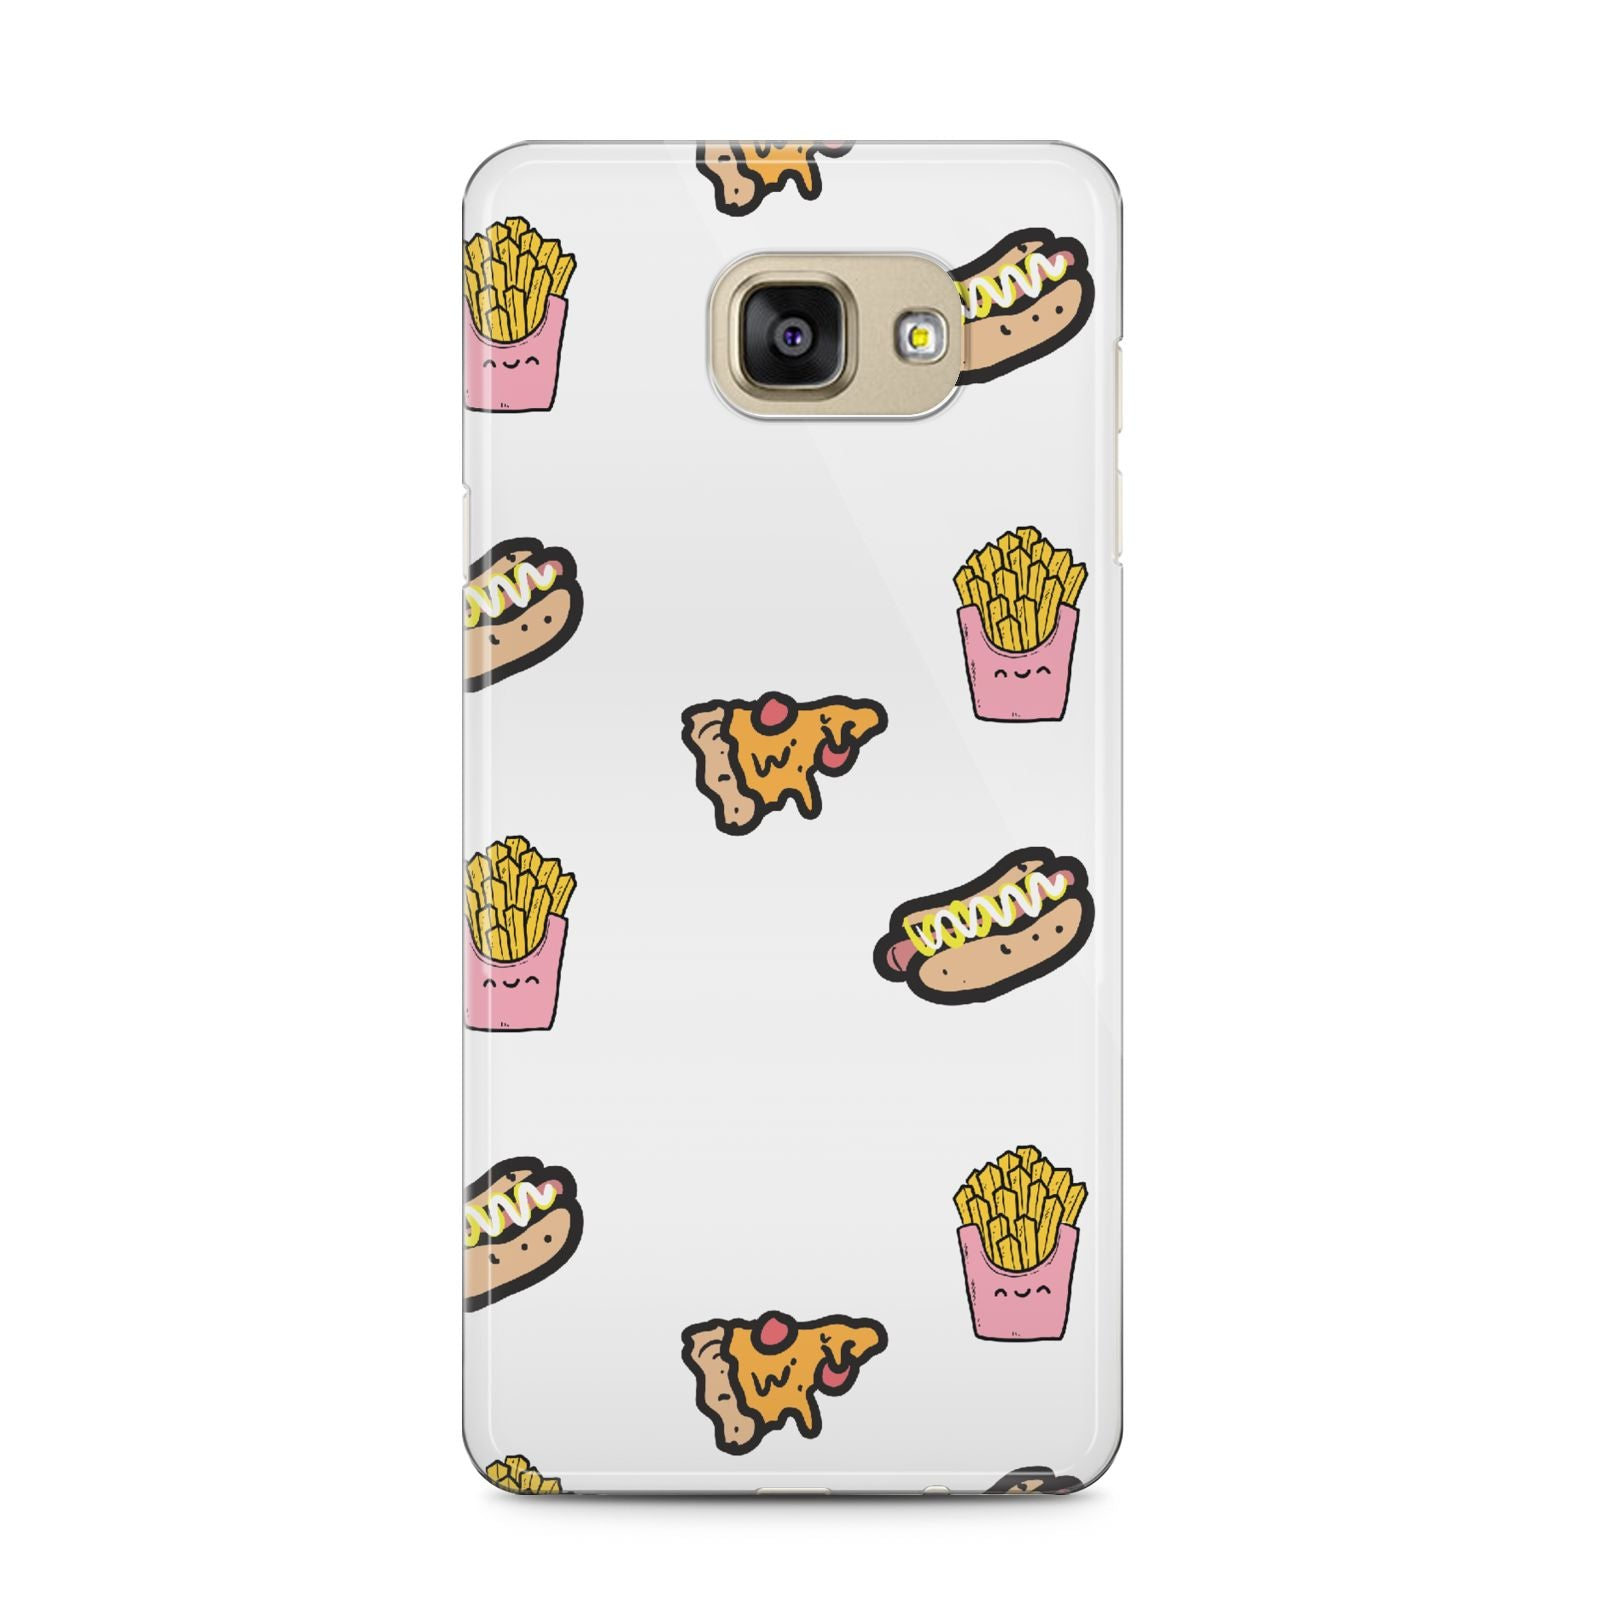 Fries Pizza Hot Dog Samsung Galaxy A5 2016 Case on gold phone